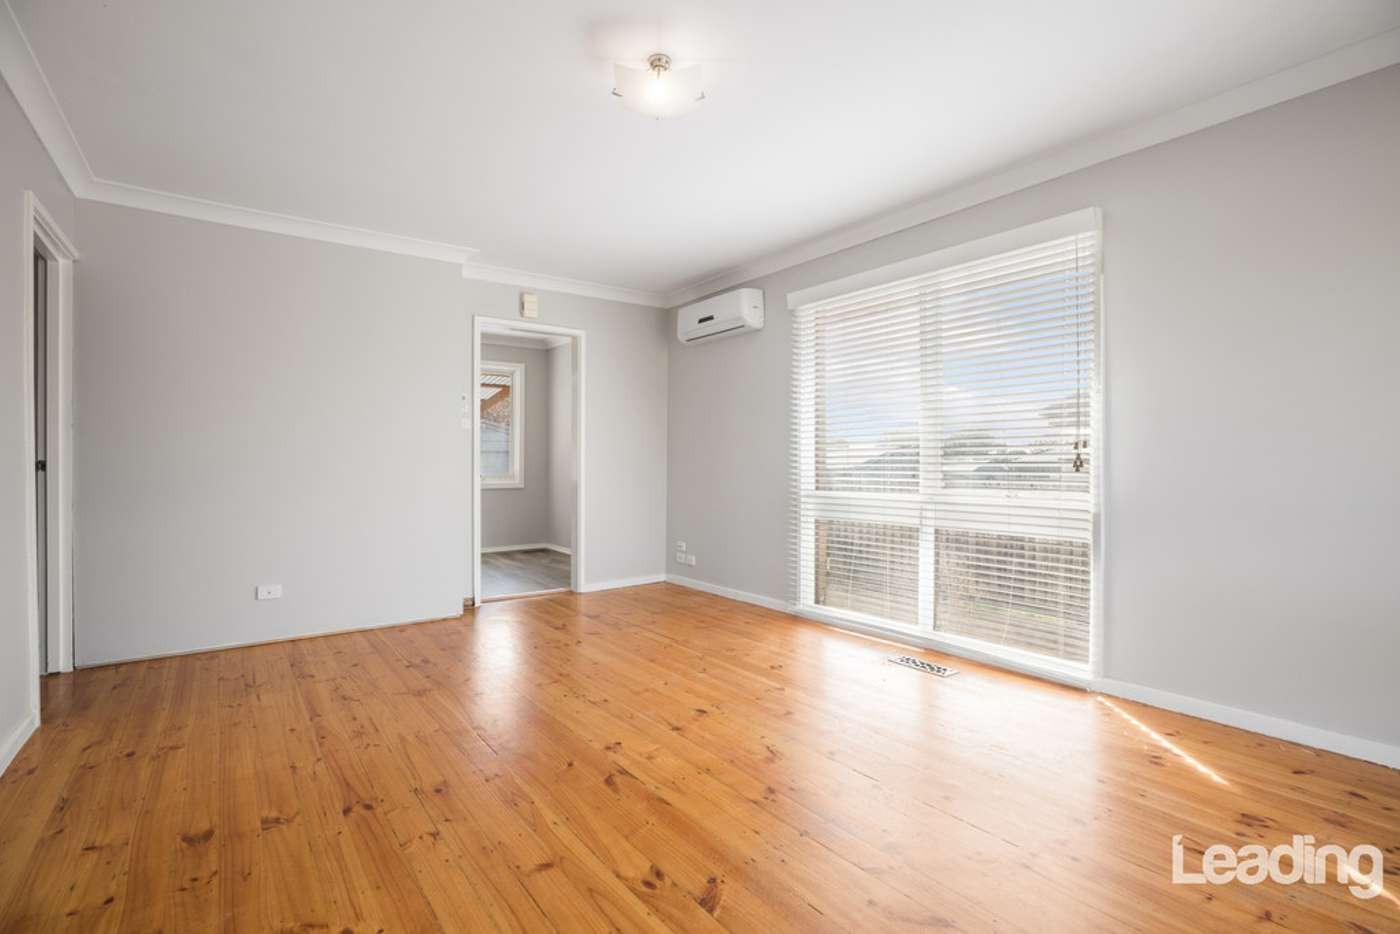 Sixth view of Homely house listing, 54 Dobell Avenue, Sunbury VIC 3429